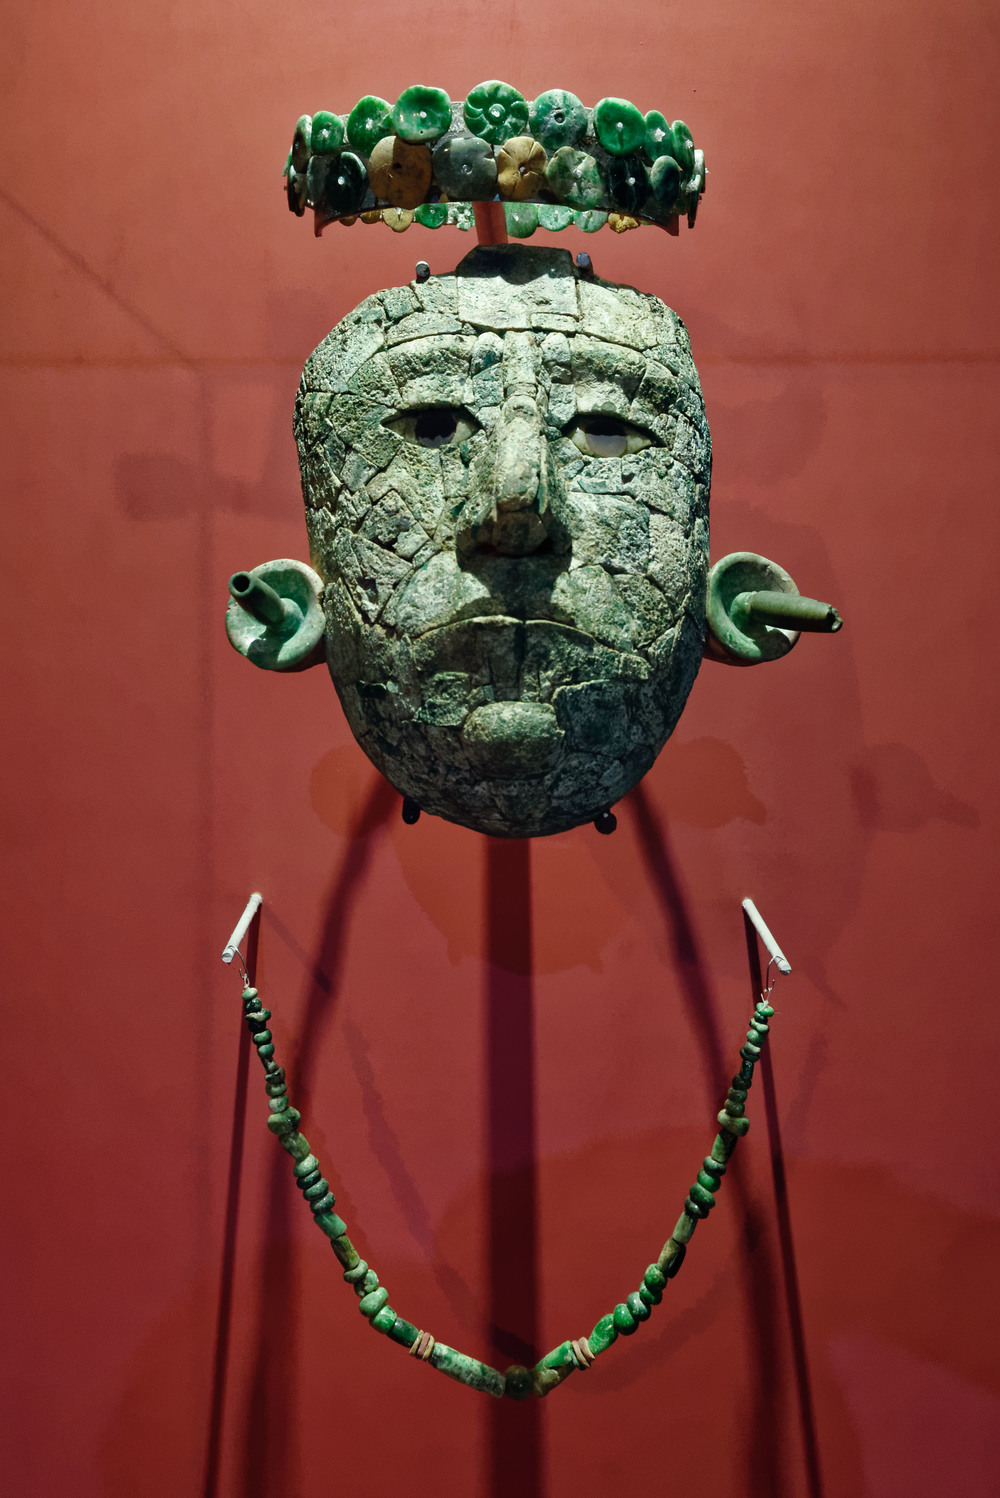 The Red Queen's Funerary Offerings. 7th Century A.D.   A mask made of malachite plaques covered this woman's face. The green colour stood for life renovation. By using funerary masks (normally made of jade), maya rulers associated themselves to the Young Maize God, who was reborn every year. The headband and necklace are jade made. Temple XIII.